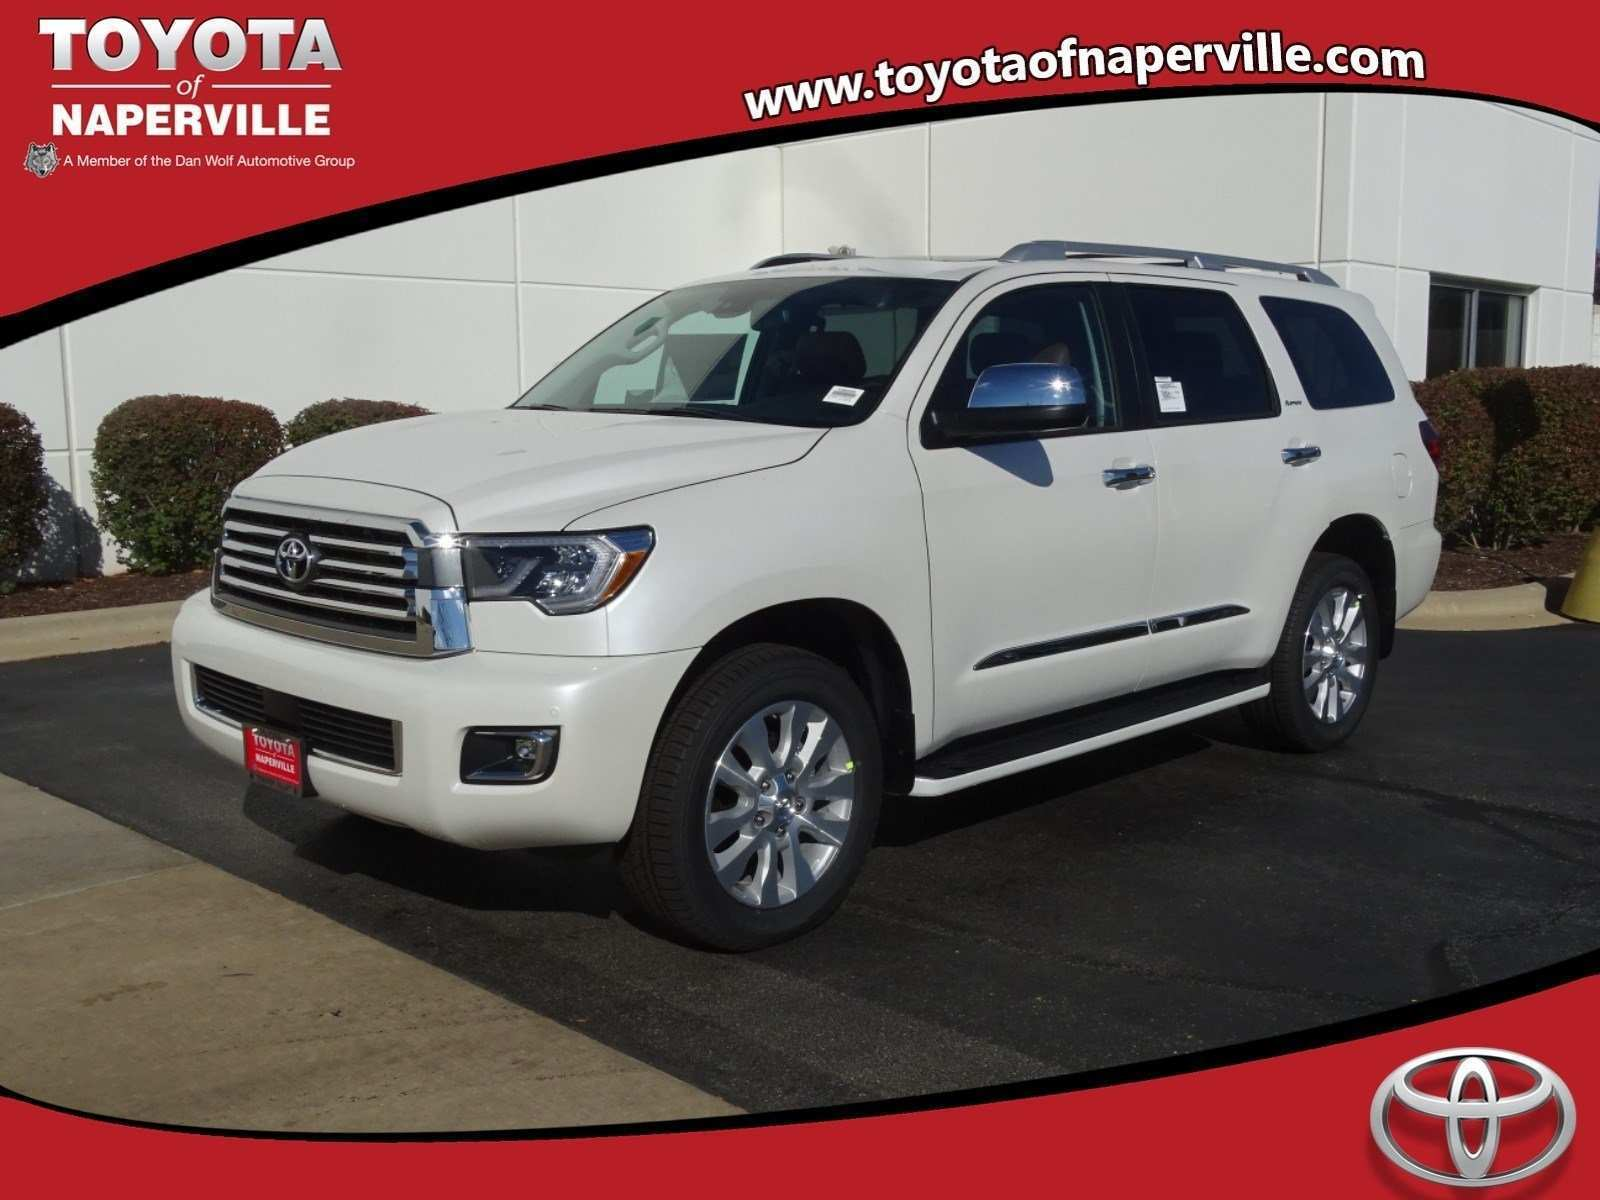 15 All New 2019 Toyota Sequoia Spy Photos Price Prices for 2019 Toyota Sequoia Spy Photos Price